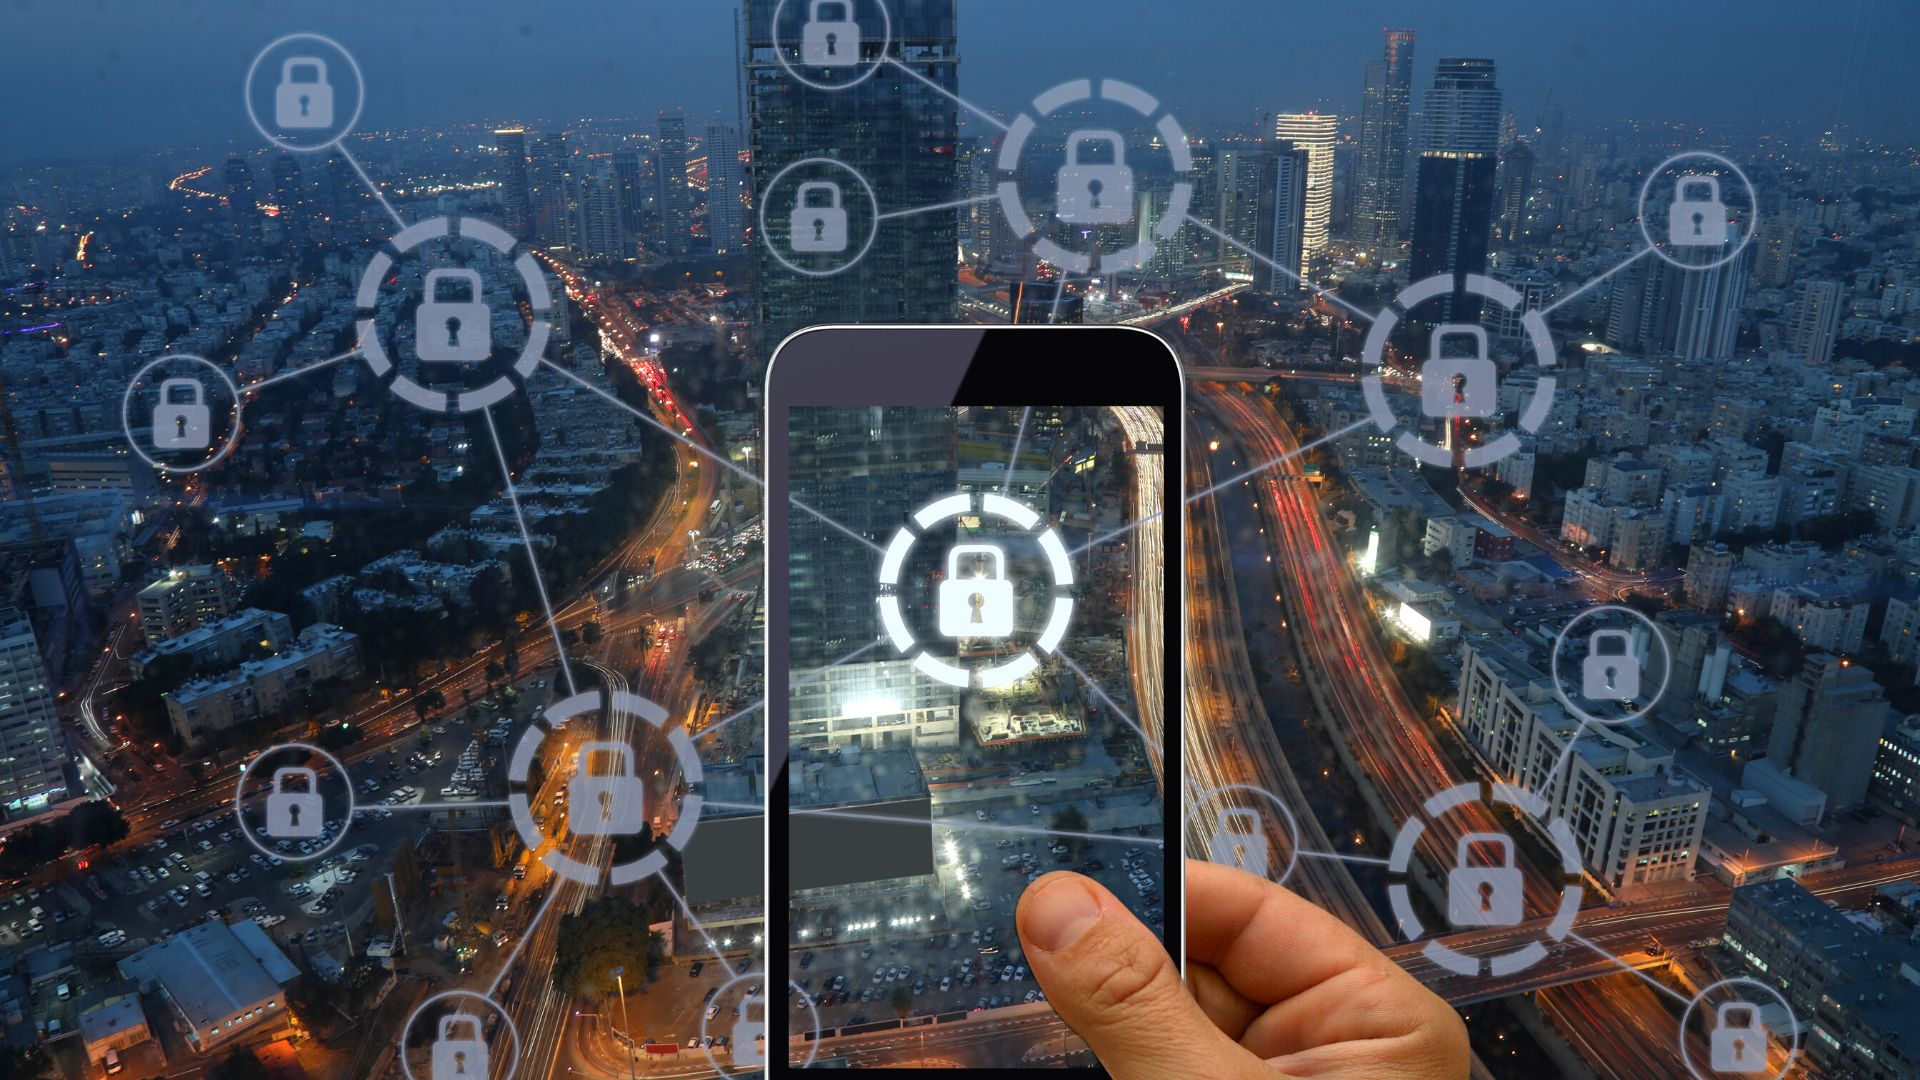 Read: Mobile Security Tips to Protect Your Data from Cyber Criminals